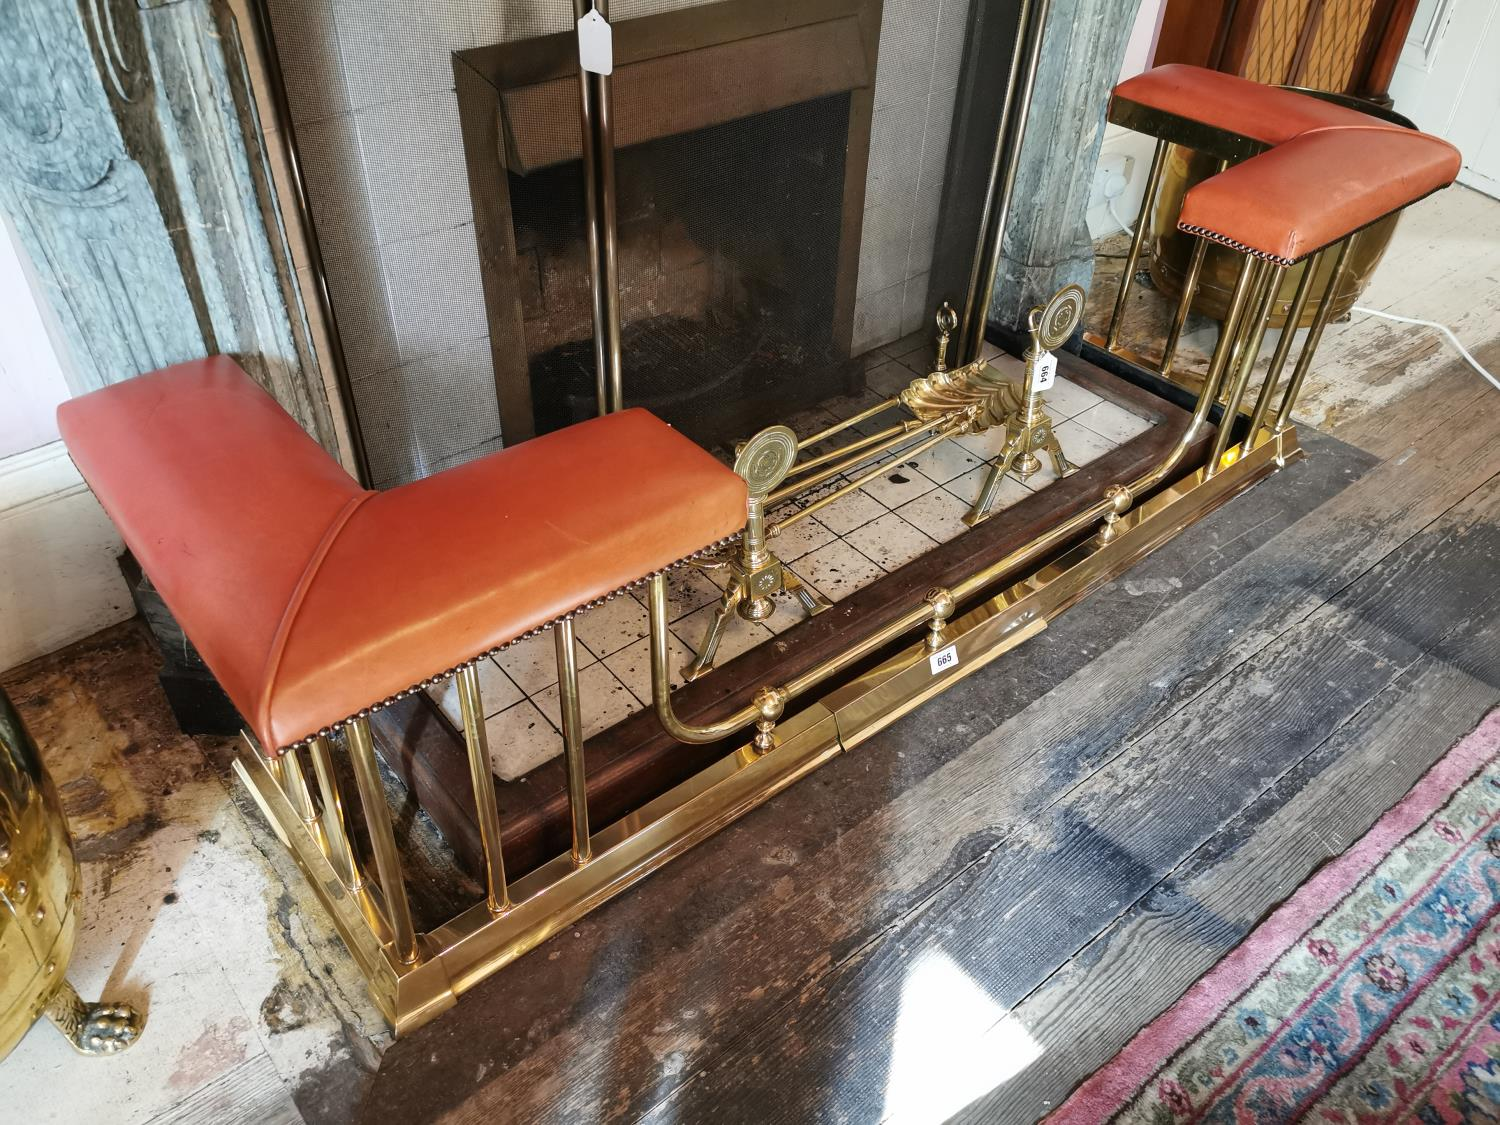 Brass extendable club fender with leather seats. - Image 2 of 3